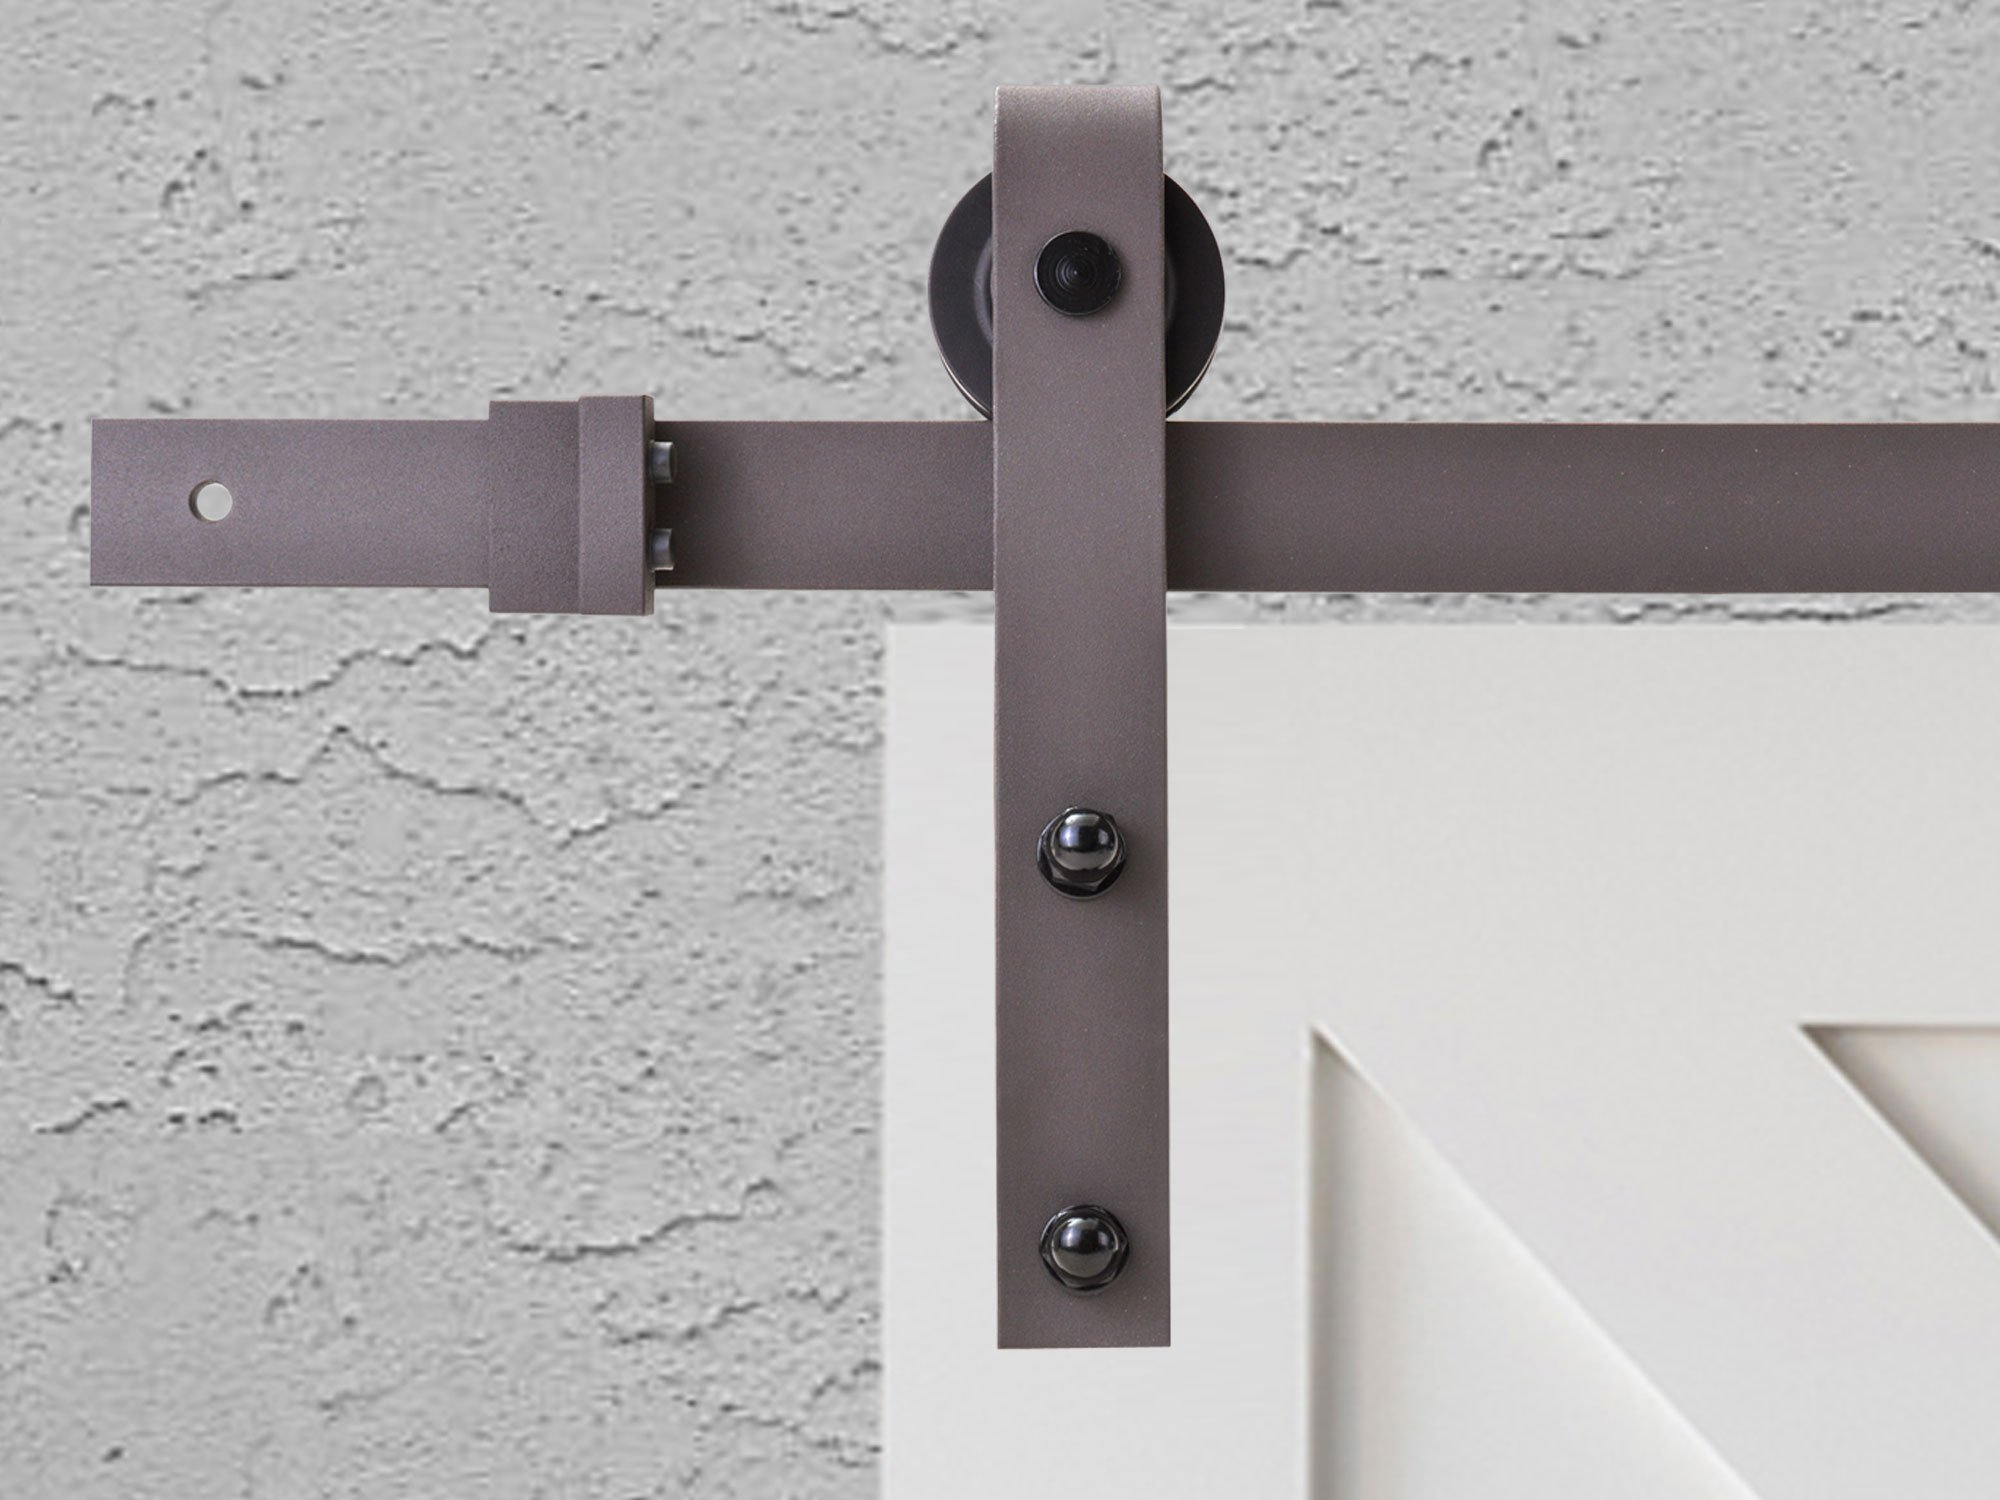 Classic Bent Strap Barn Style Decorative Sliding Door Track and Hardware Set (6.6 FT, Antique Bronze) by Calhome (Image #3)